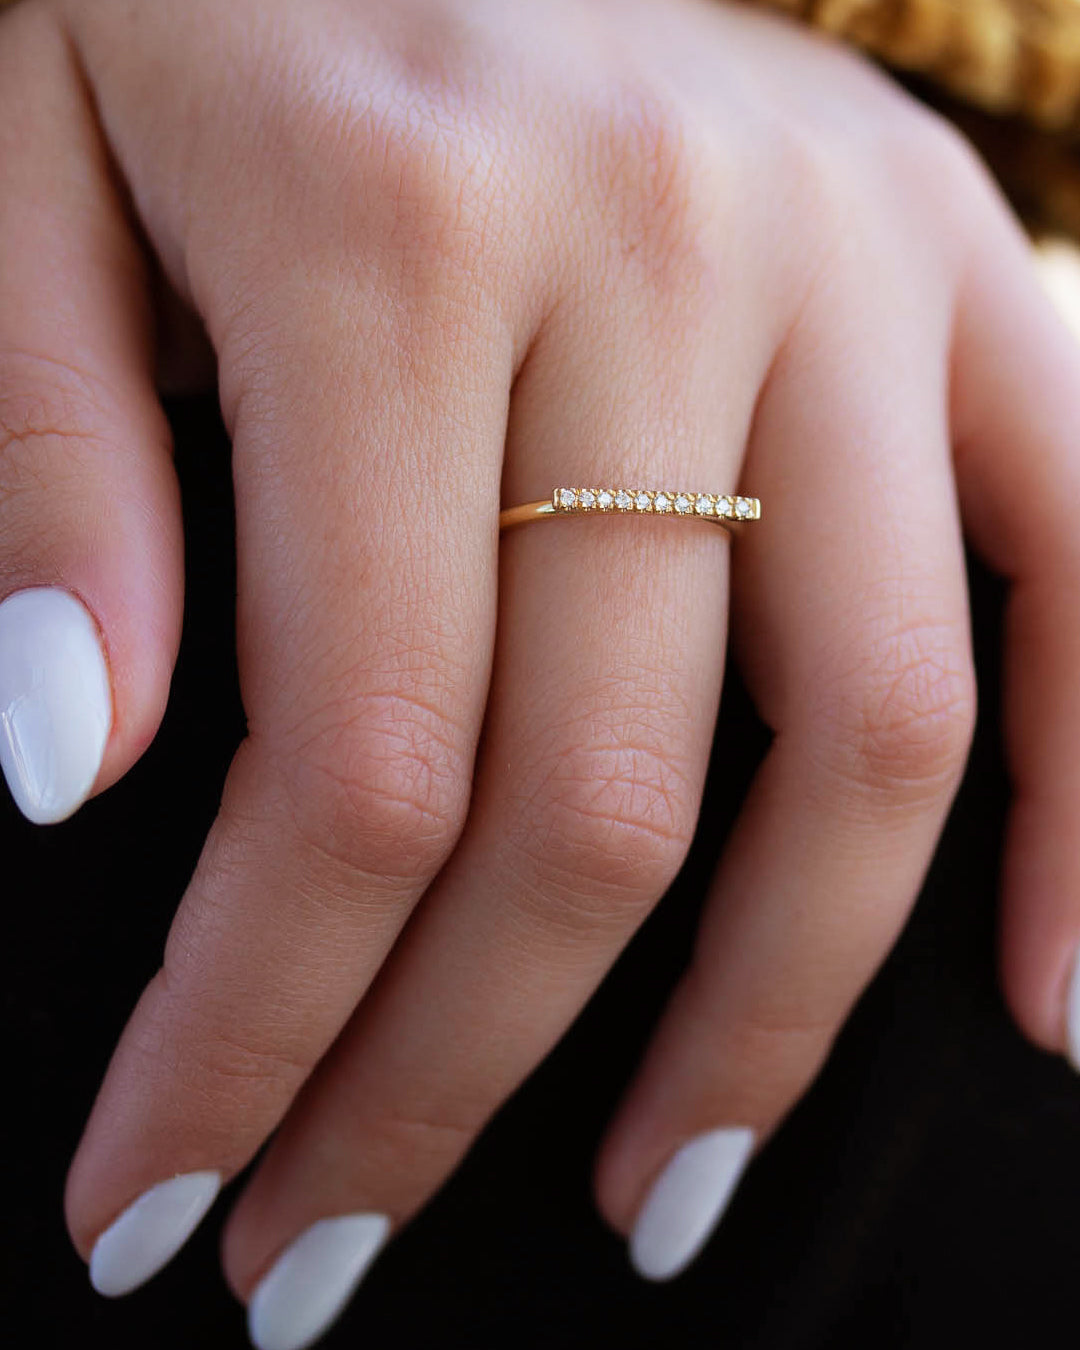 A dainty 14k yellow gold ring, with a horizontal bar on top, set with nine tiny white diamonds.